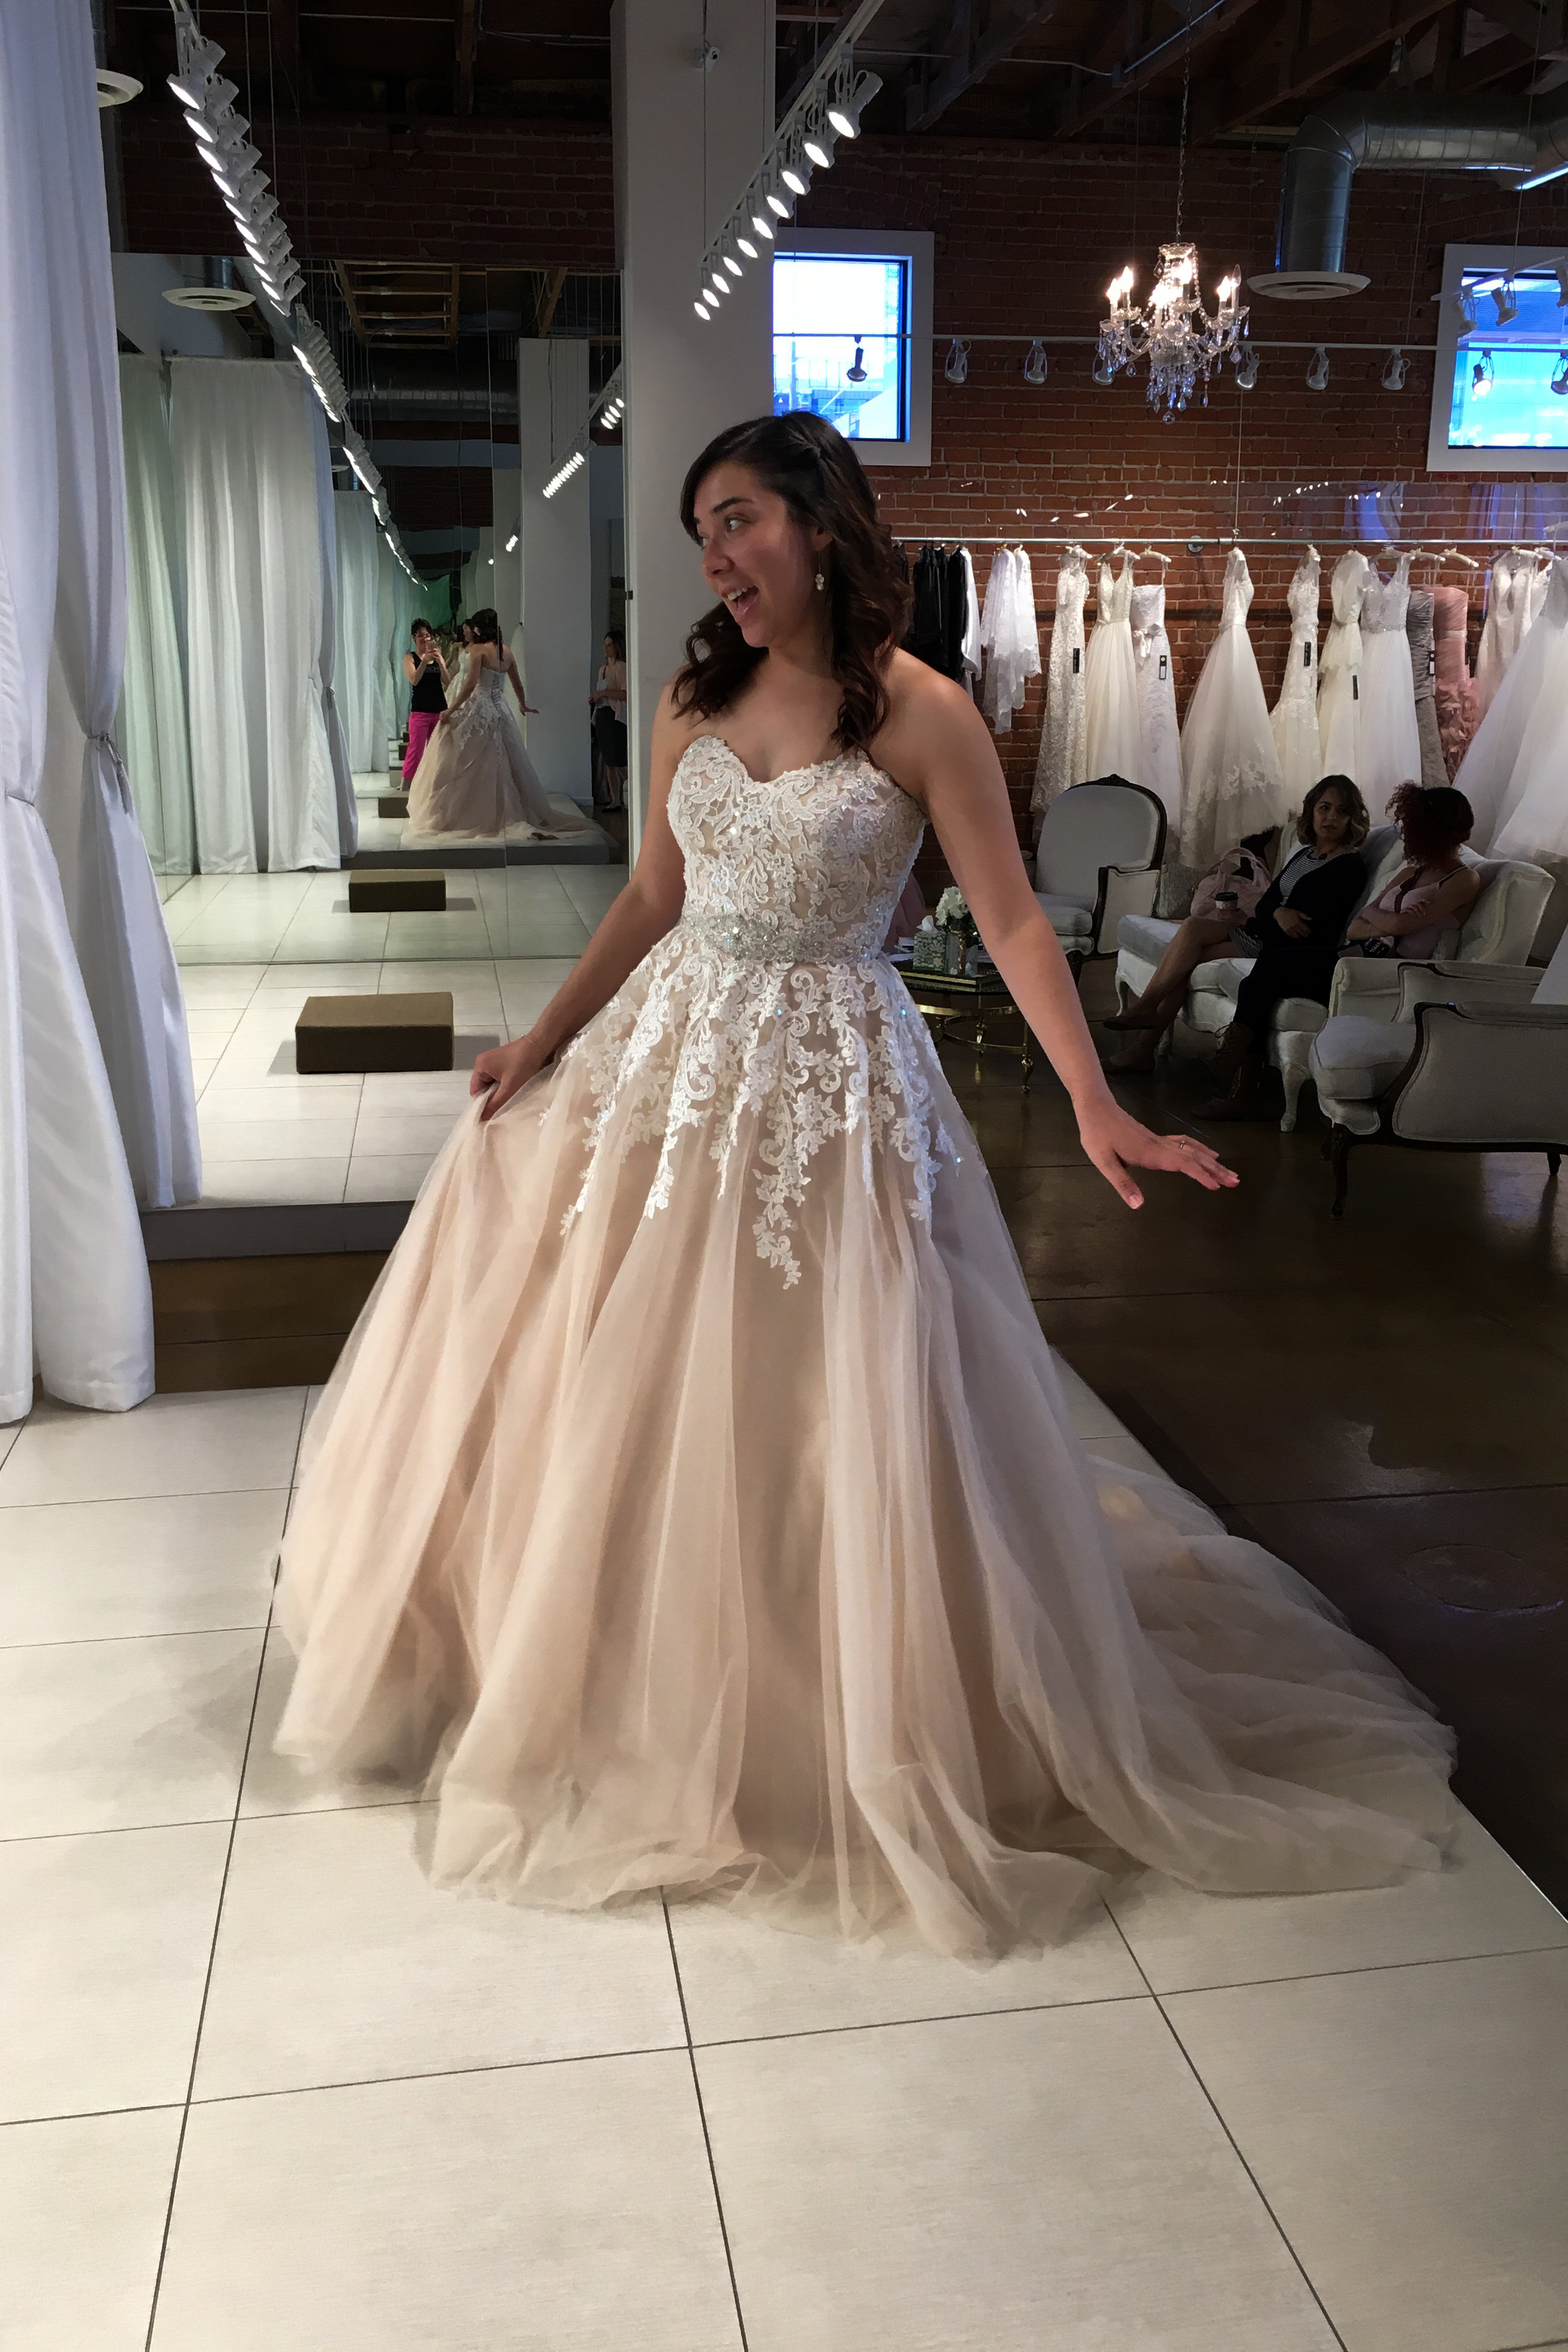 My last fitting before the big day!!!